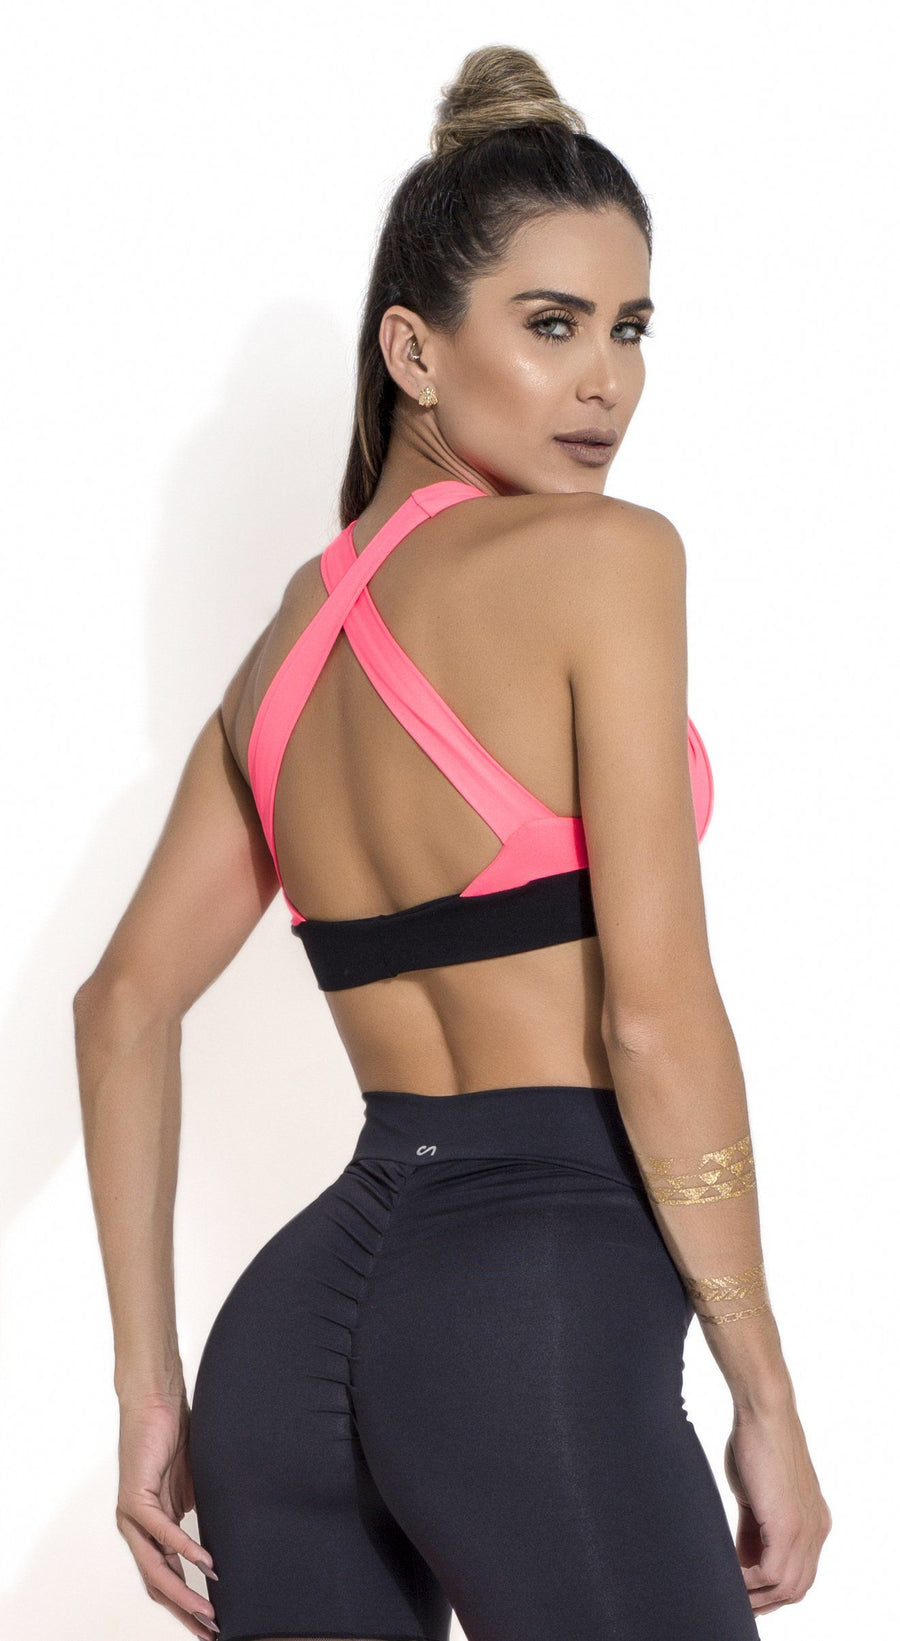 Brazilian Sports Bra - Padded Bra Salmon & Black